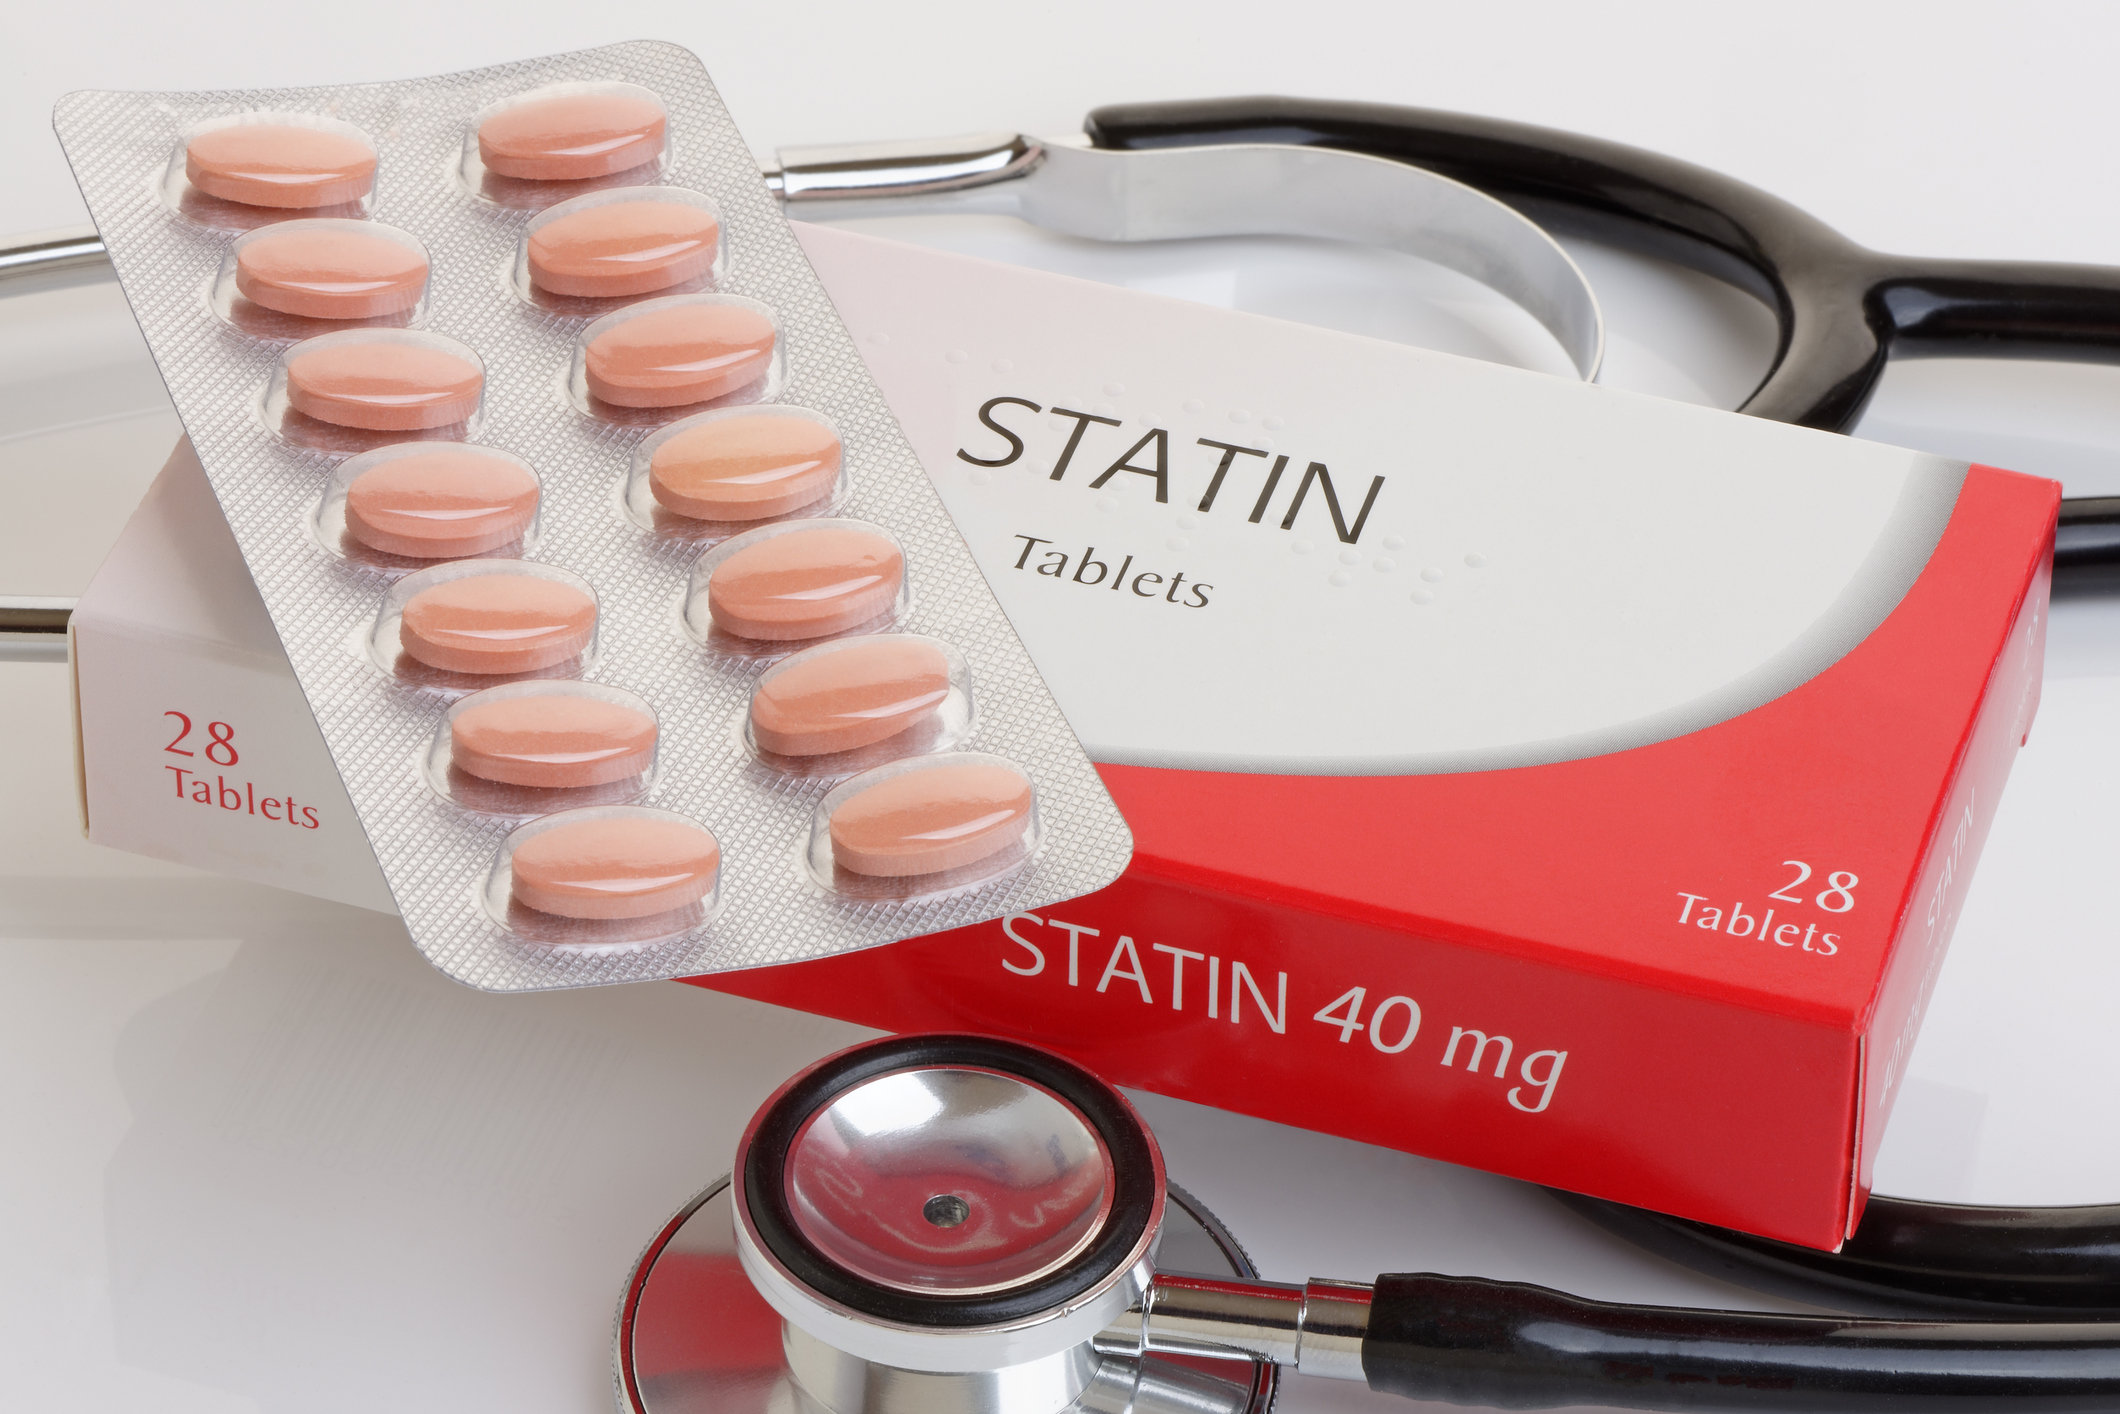 SIMVASTATIN-what are these pills and what are they taking